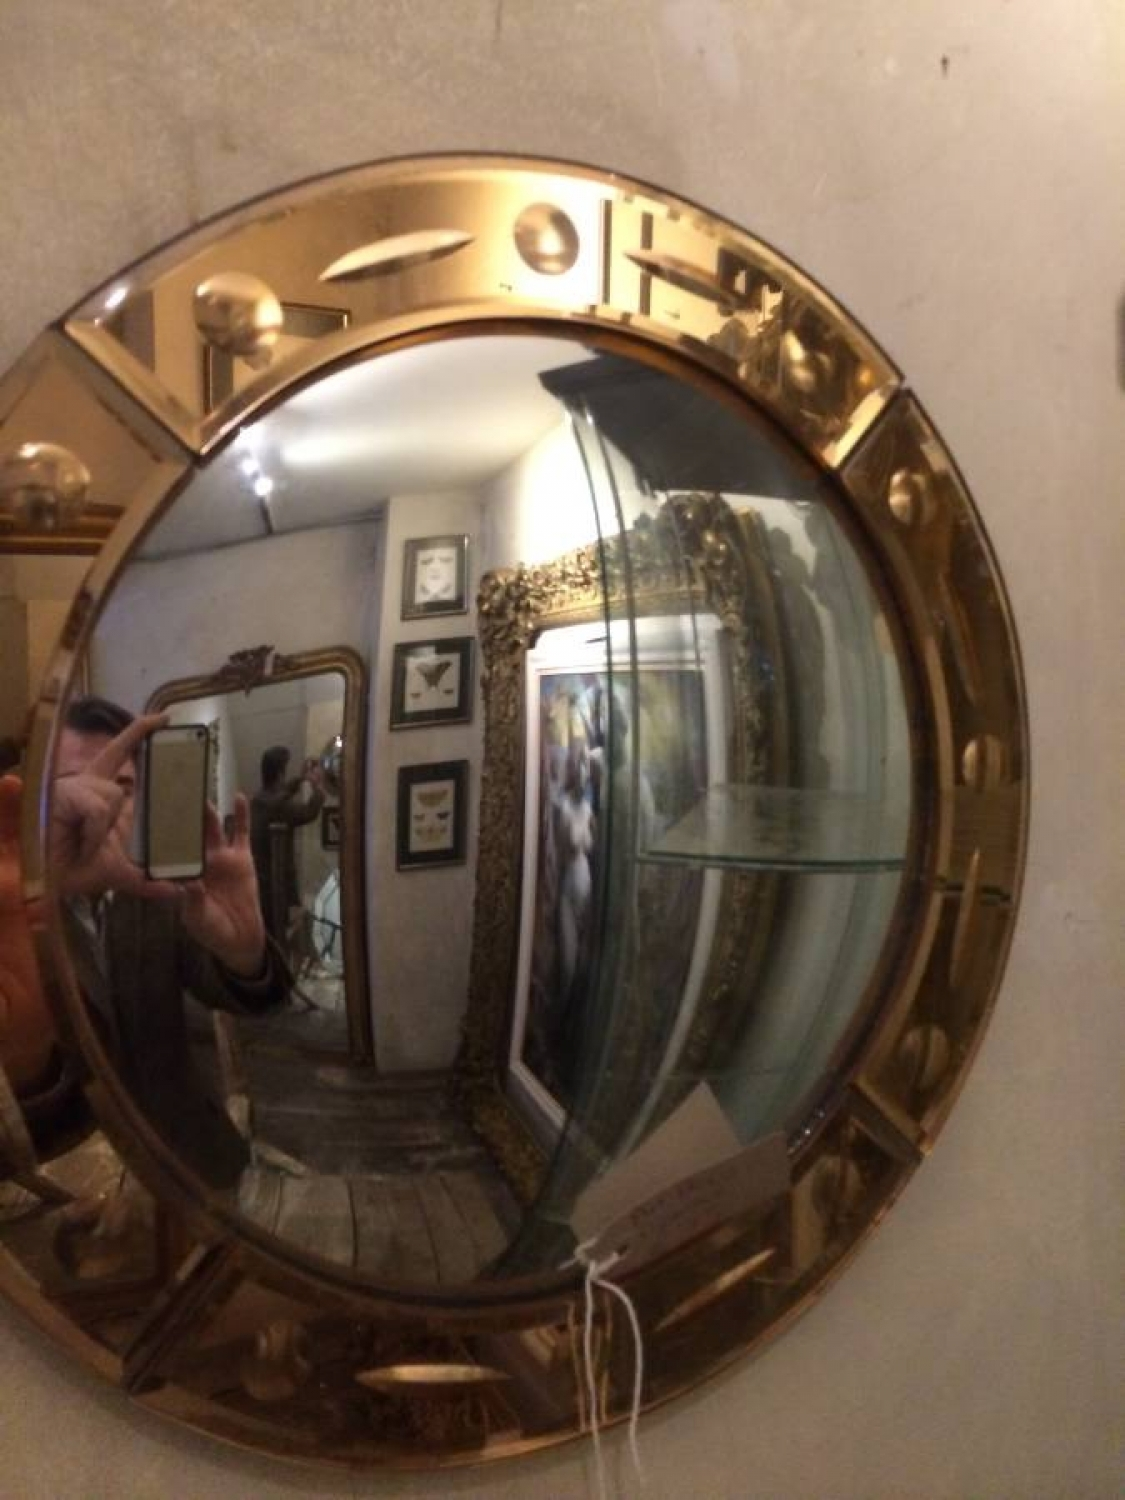 Art Deco Convex Mirror In Decorative Throughout Decorative Convex Mirror (Image 4 of 15)